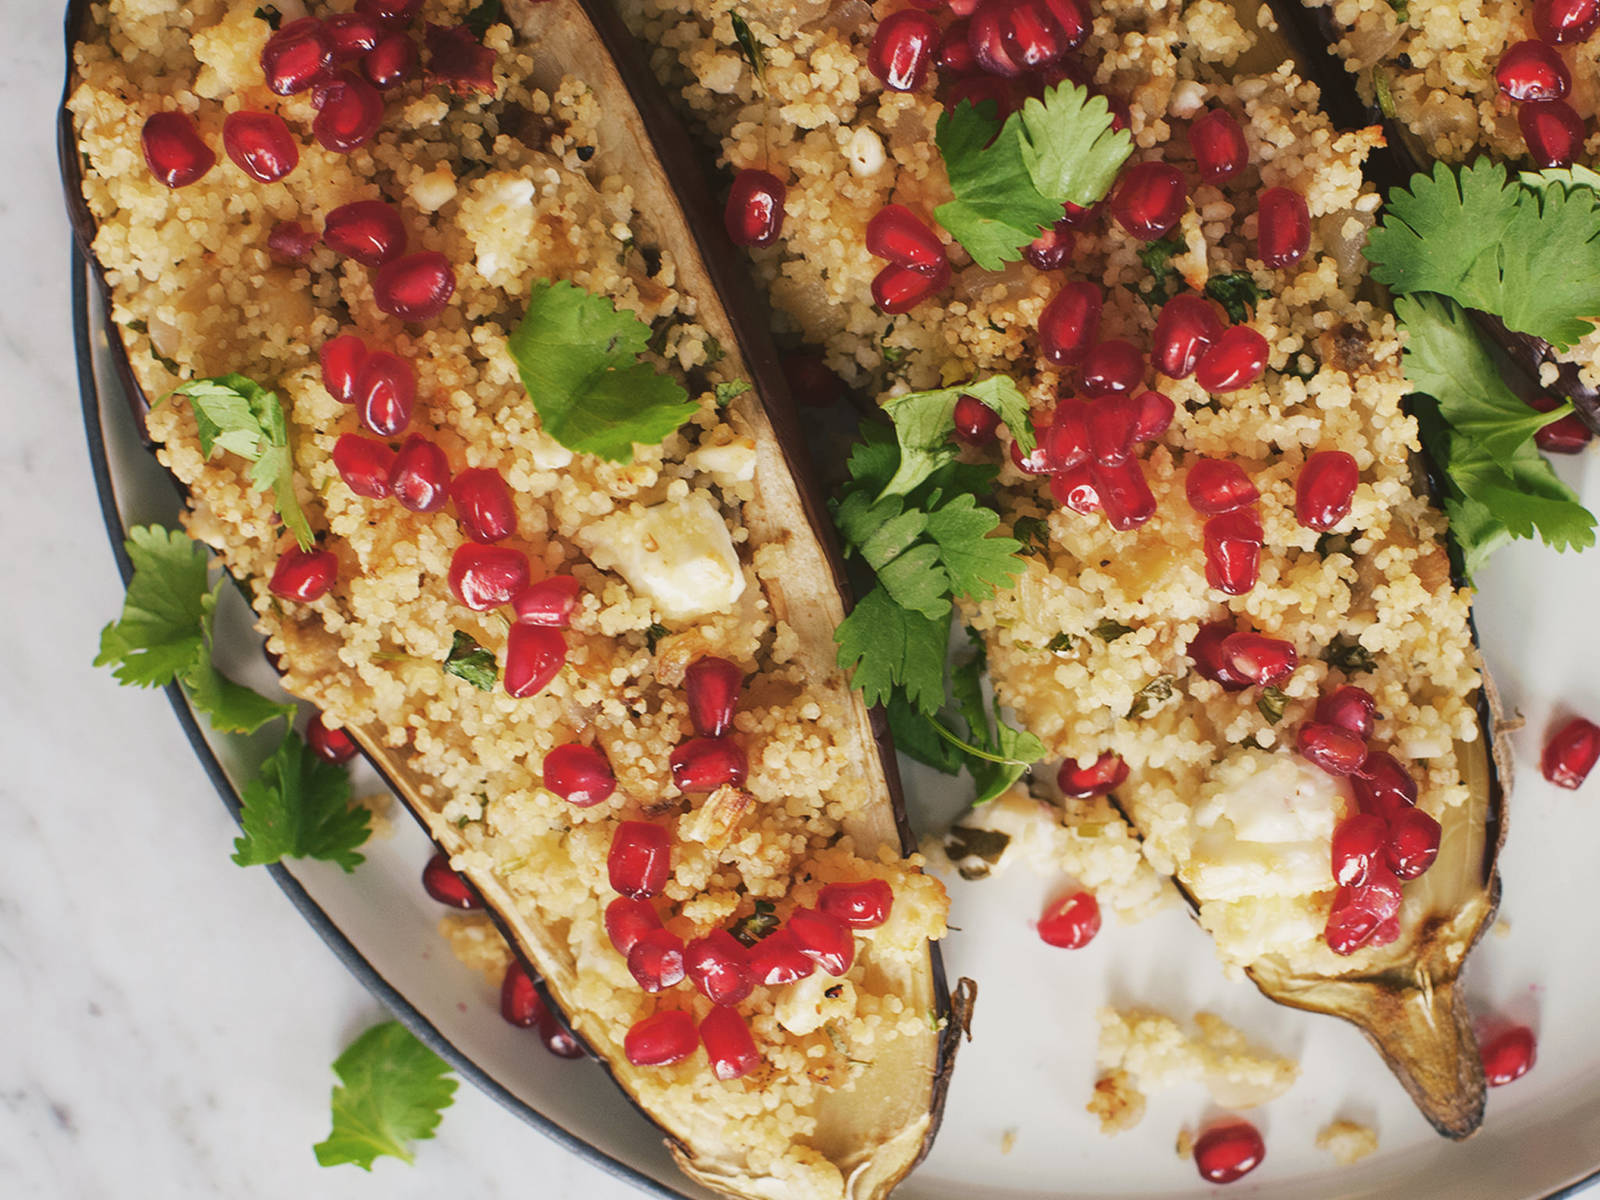 Pomegranate and couscous stuffed eggplant